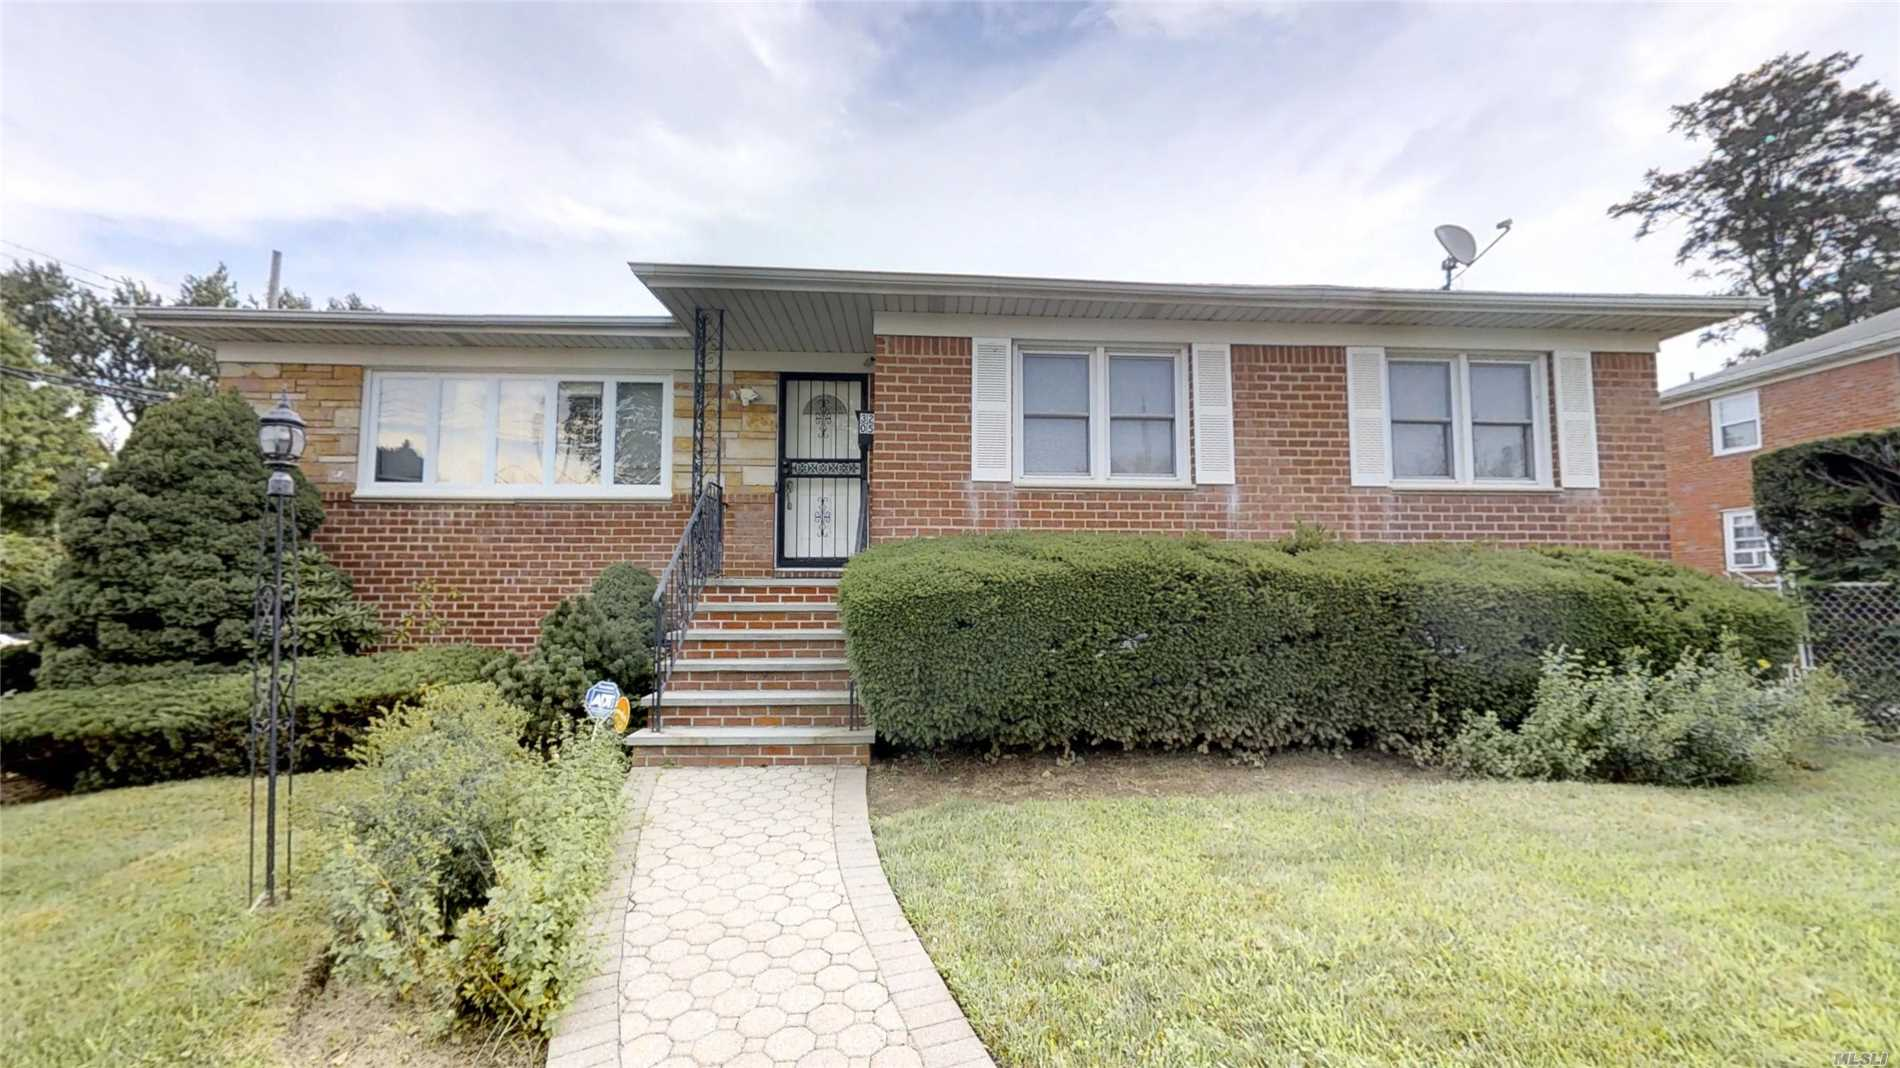 Newly Renovated Single Family Brick Home Located In Murray Hill - Flushing. Less Than One Block Away From Bowne Park. Conveniently 5 Mins Walk To Northern Blvd With Restaurants, Cafes, Supermarkets And Much More. Close To All Transportations (Buses/Q13, Q15, Q15A, Q28, Q16, Flushing-Palisades Park Shuttle Bus) & Lirr. Young Brick Exterior With First Floor Offering Three Bedrooms And Two Full Baths, Hardwood Floors With Advanced Technology Kitchen Appliances And Two Car Garage